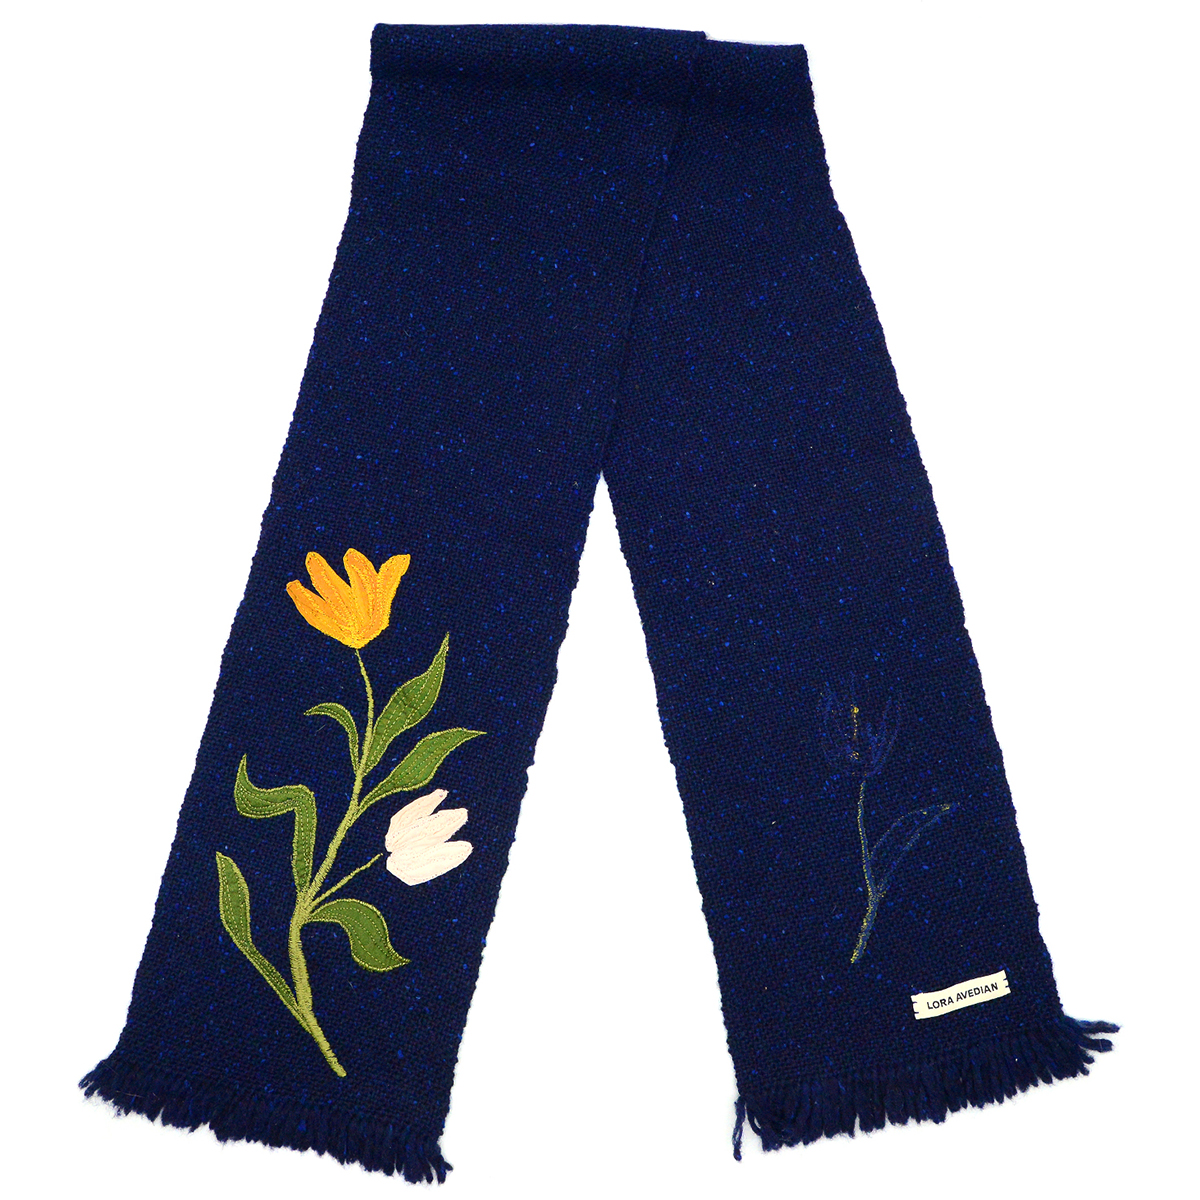 May Morris embroidered scarf